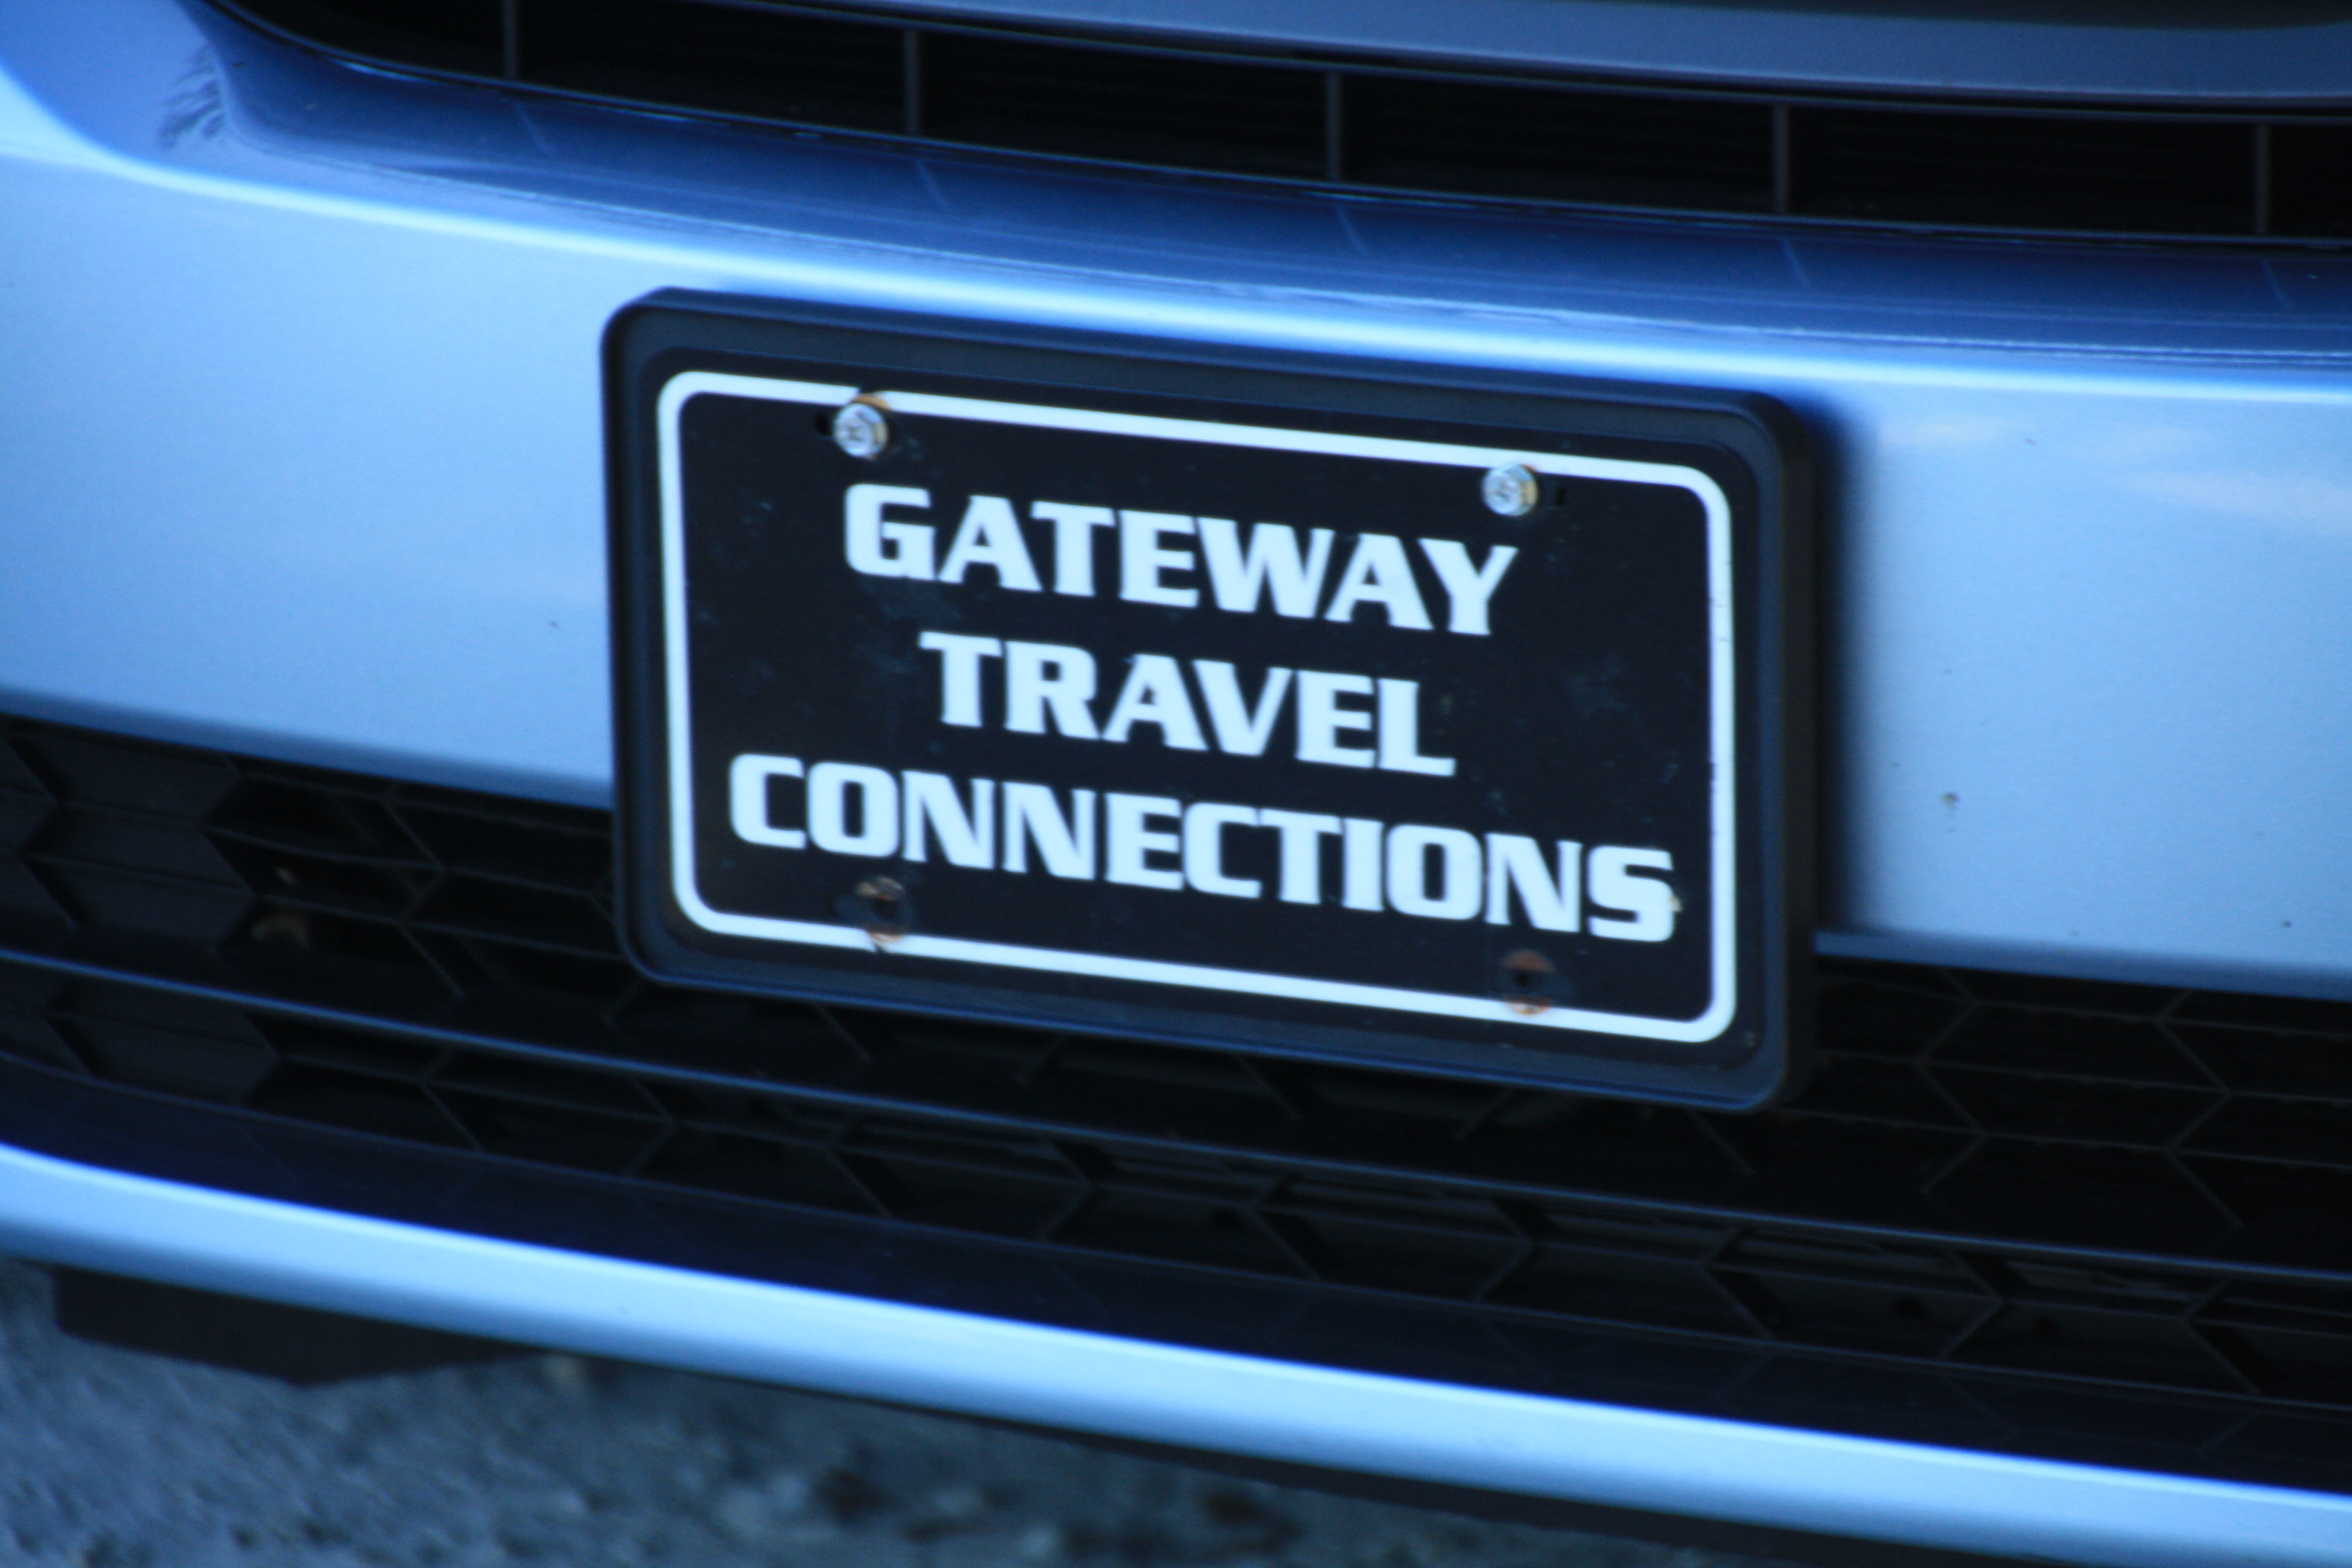 Gateway Travel Connections